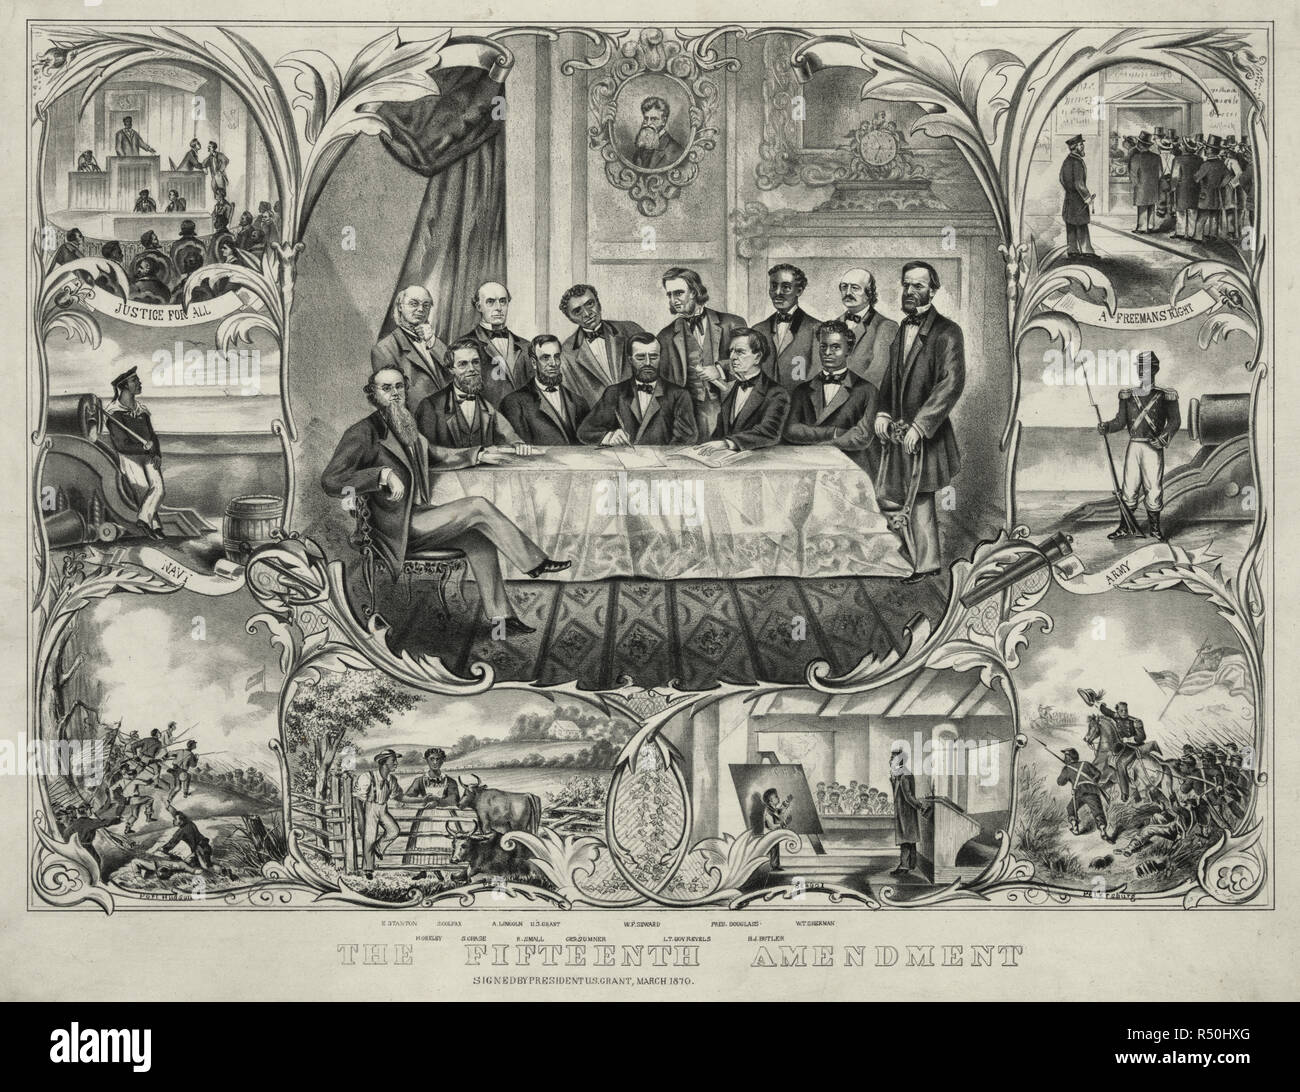 The fifteenth amendment  - 	Print showing President Grant sitting at the center of a large table, with several men clustered around, signing the 15th amendment granting that the right to vote cannot be denied on basis of race or color. From left, sitting and standing, are 'E. Stanton, H. Greley [i.e., Greeley], S. Colfax, A. Lincoln, R. Small[s], U.S. Grant, Chs. Sumner, W.F. Seward, Lt. Gov. Revels, Fred. Douglass, B.J. [i.e., F.] Butler, [and] W.T. Sherman.' Vignettes along sides and bottom show African Americans in military service, at school, on the farm, and voting. A head-and-shoulders p - Stock Image